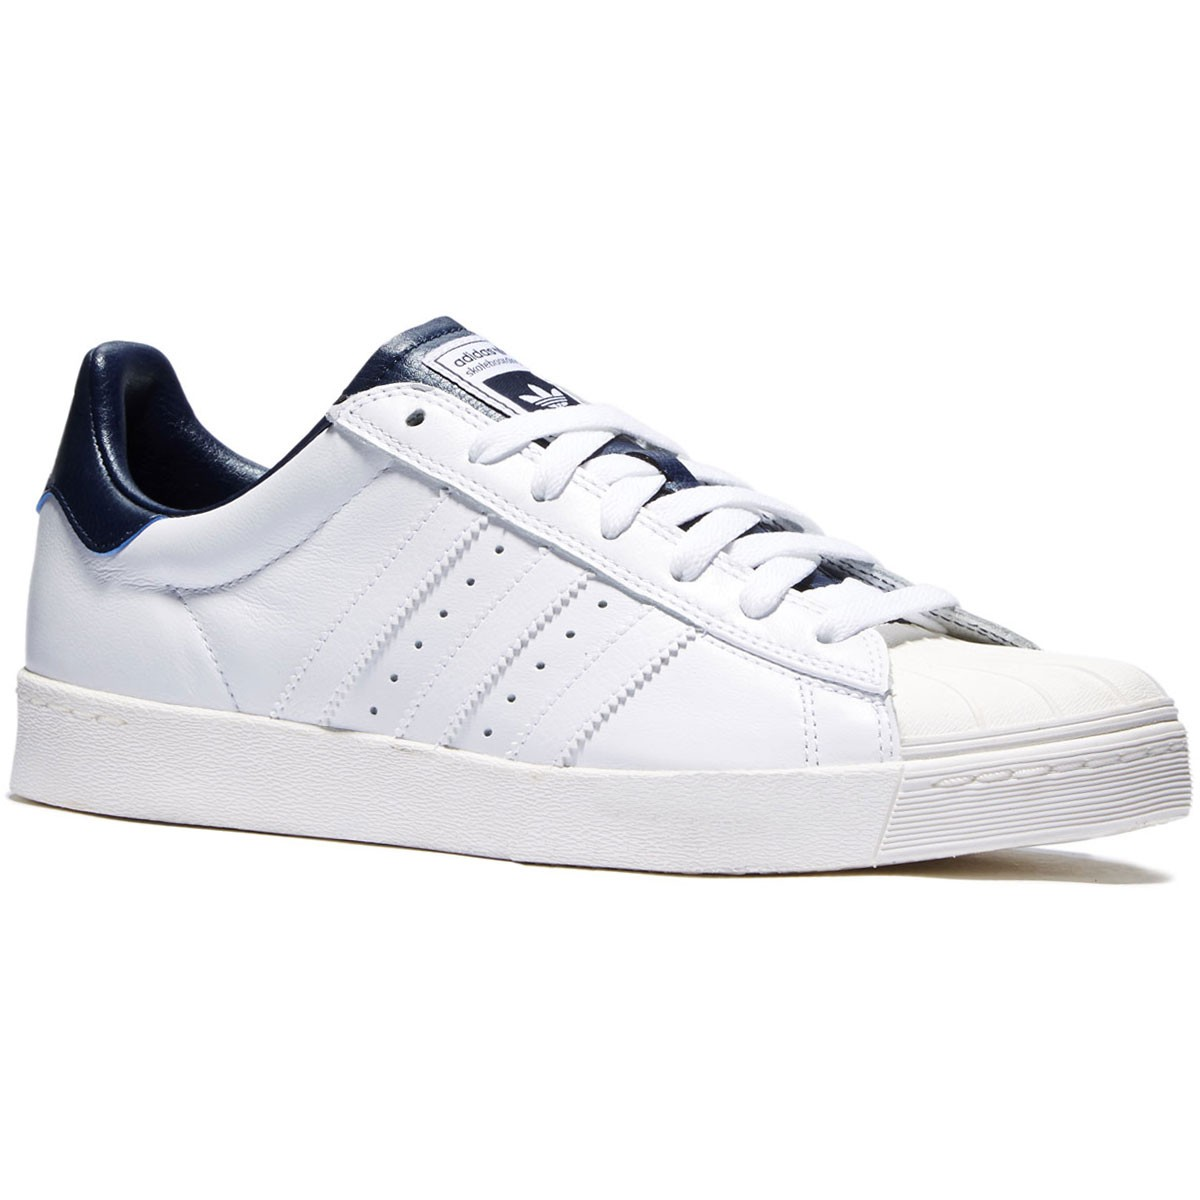 Cheap Adidas superstar vulc adv mens shoes